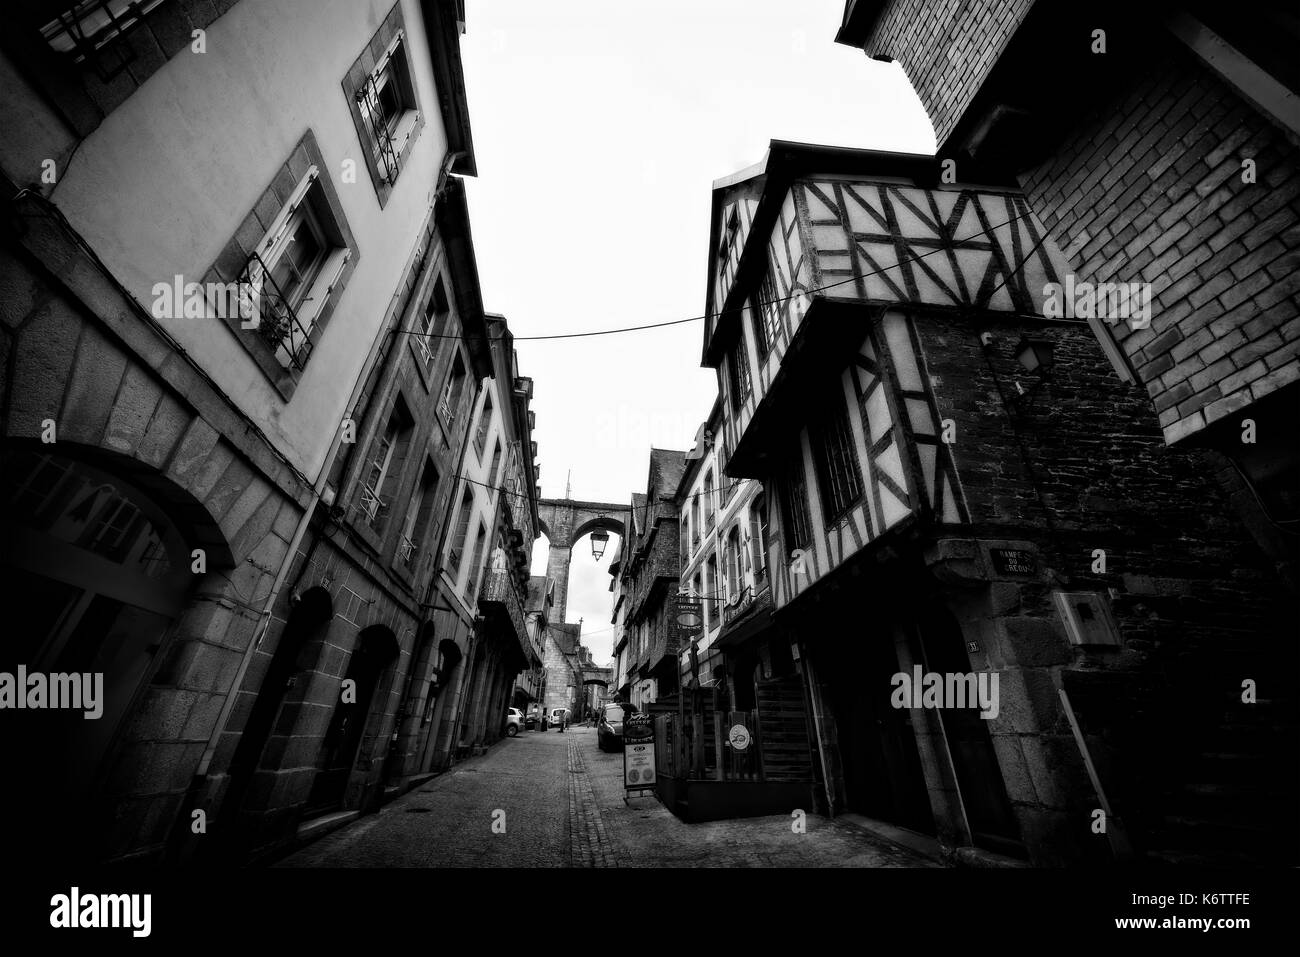 City Street scenes in black and white of the old part of the city - Stock Image